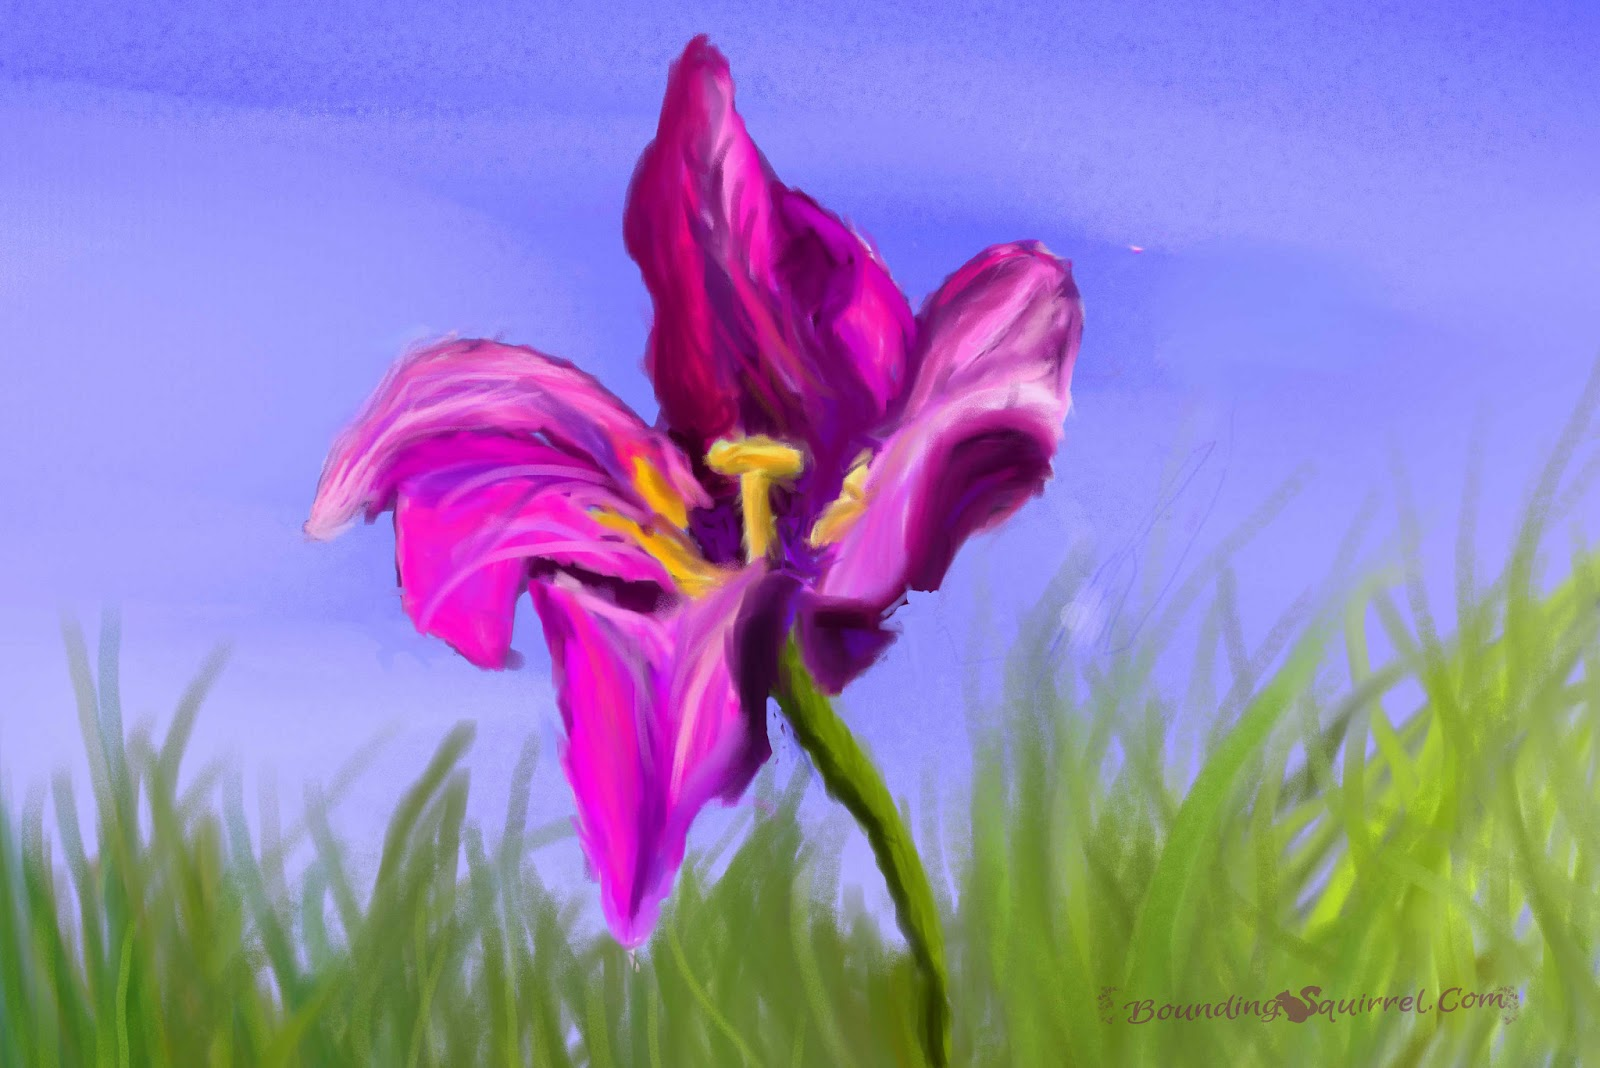 digital painting of a pinky-purple tulip